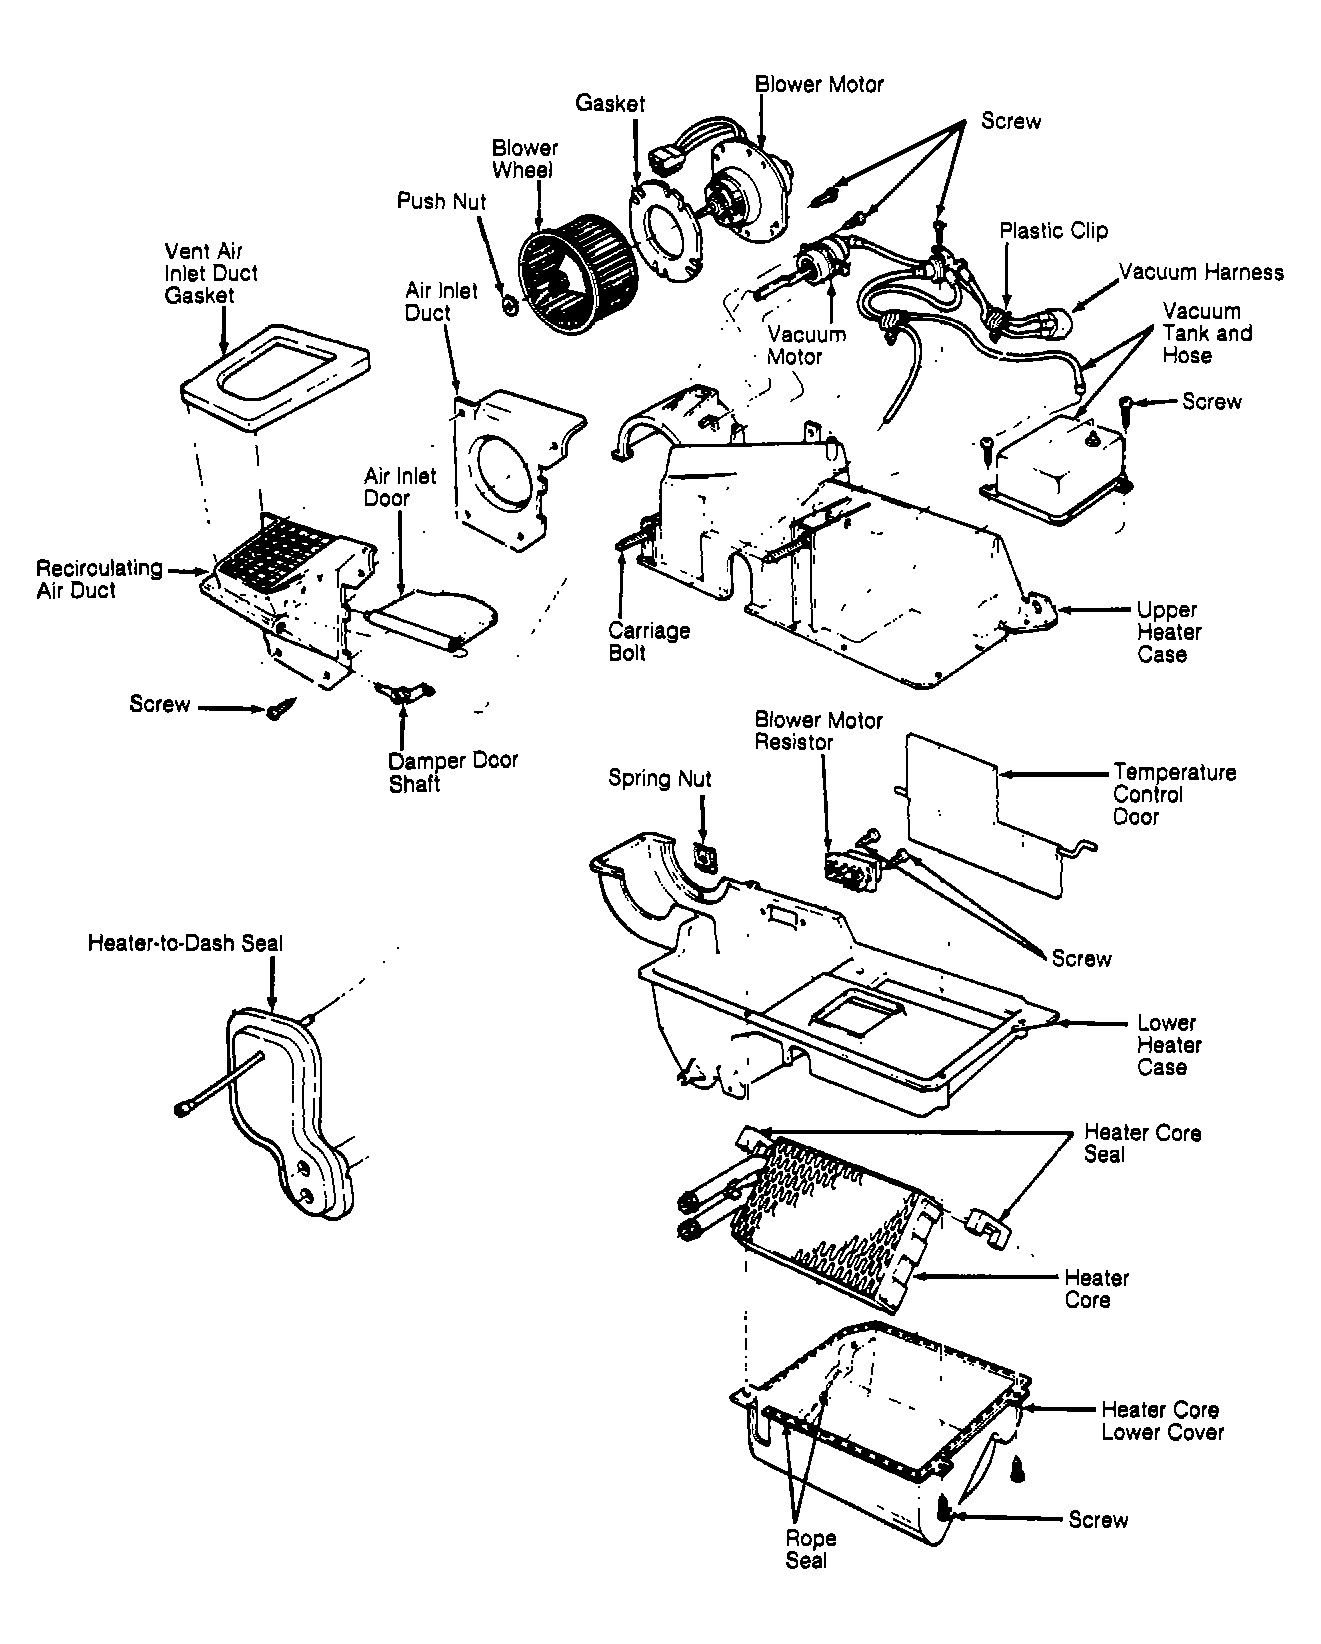 1957 Ford Fairlane Tail Light Wiring Diagram 1957 Mercury